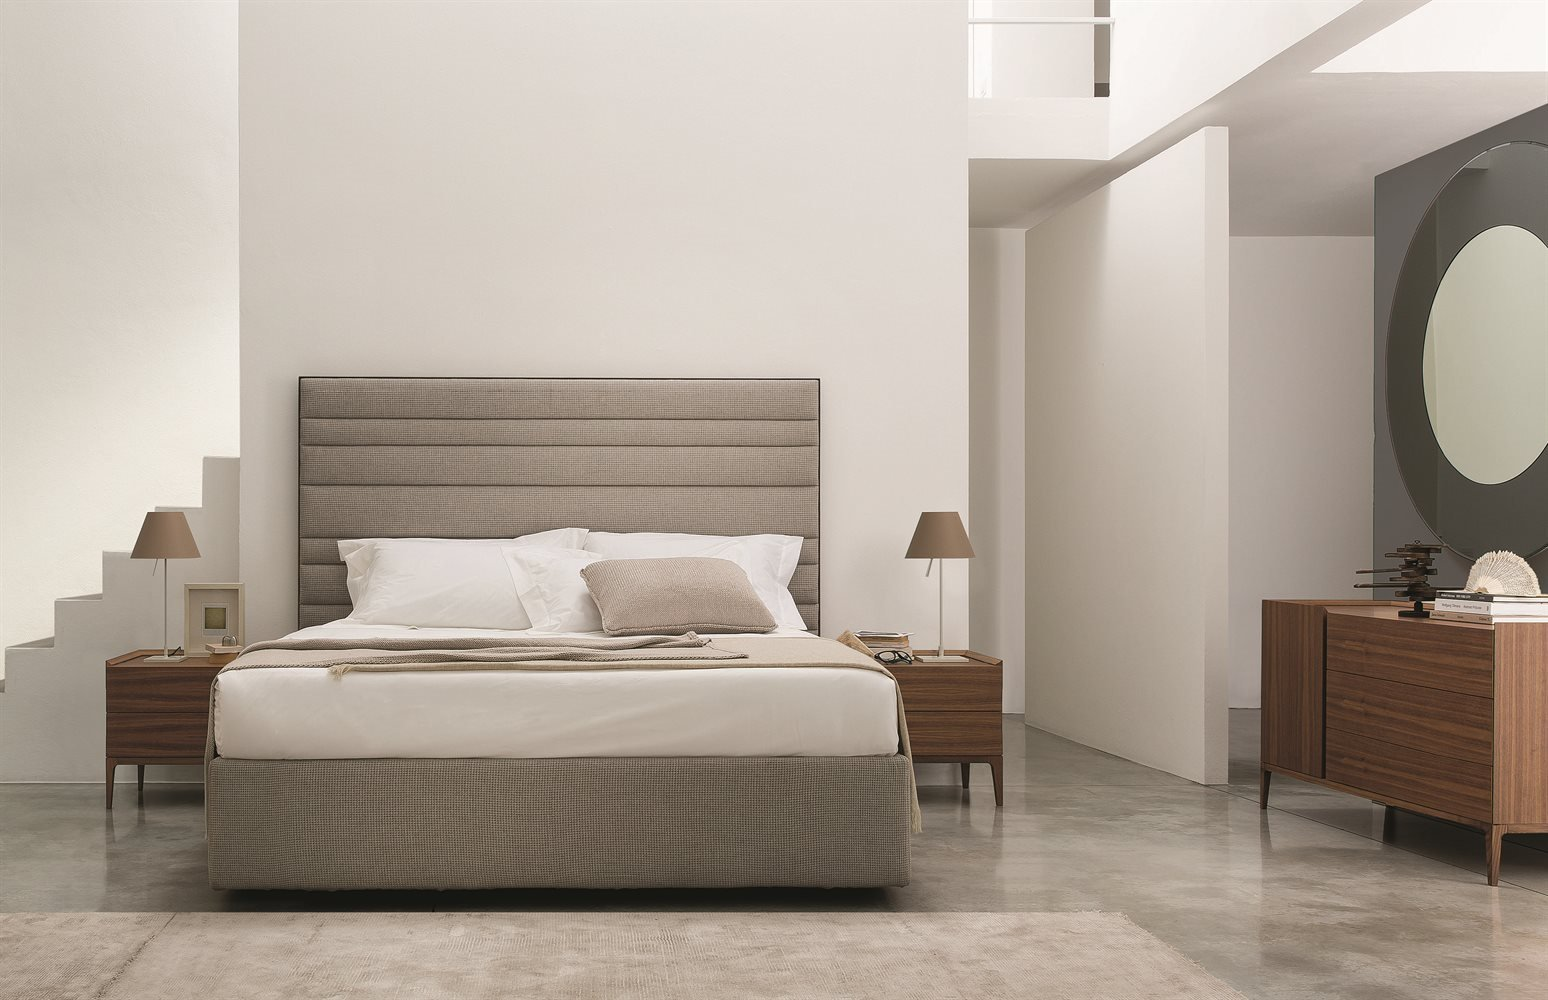 Boheme Bed from Porada